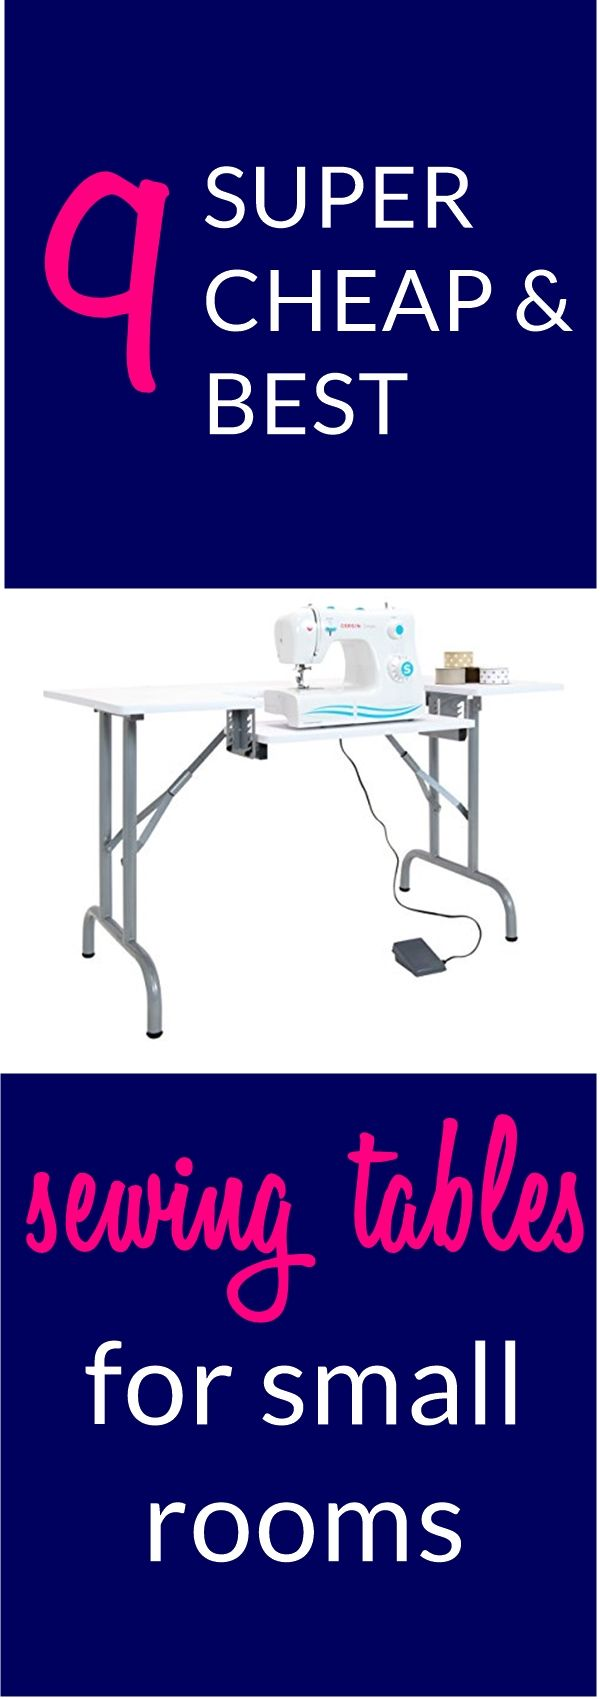 sewing cutting table | CHEAP SEWING tables | sewing machine tables | sewing tables |